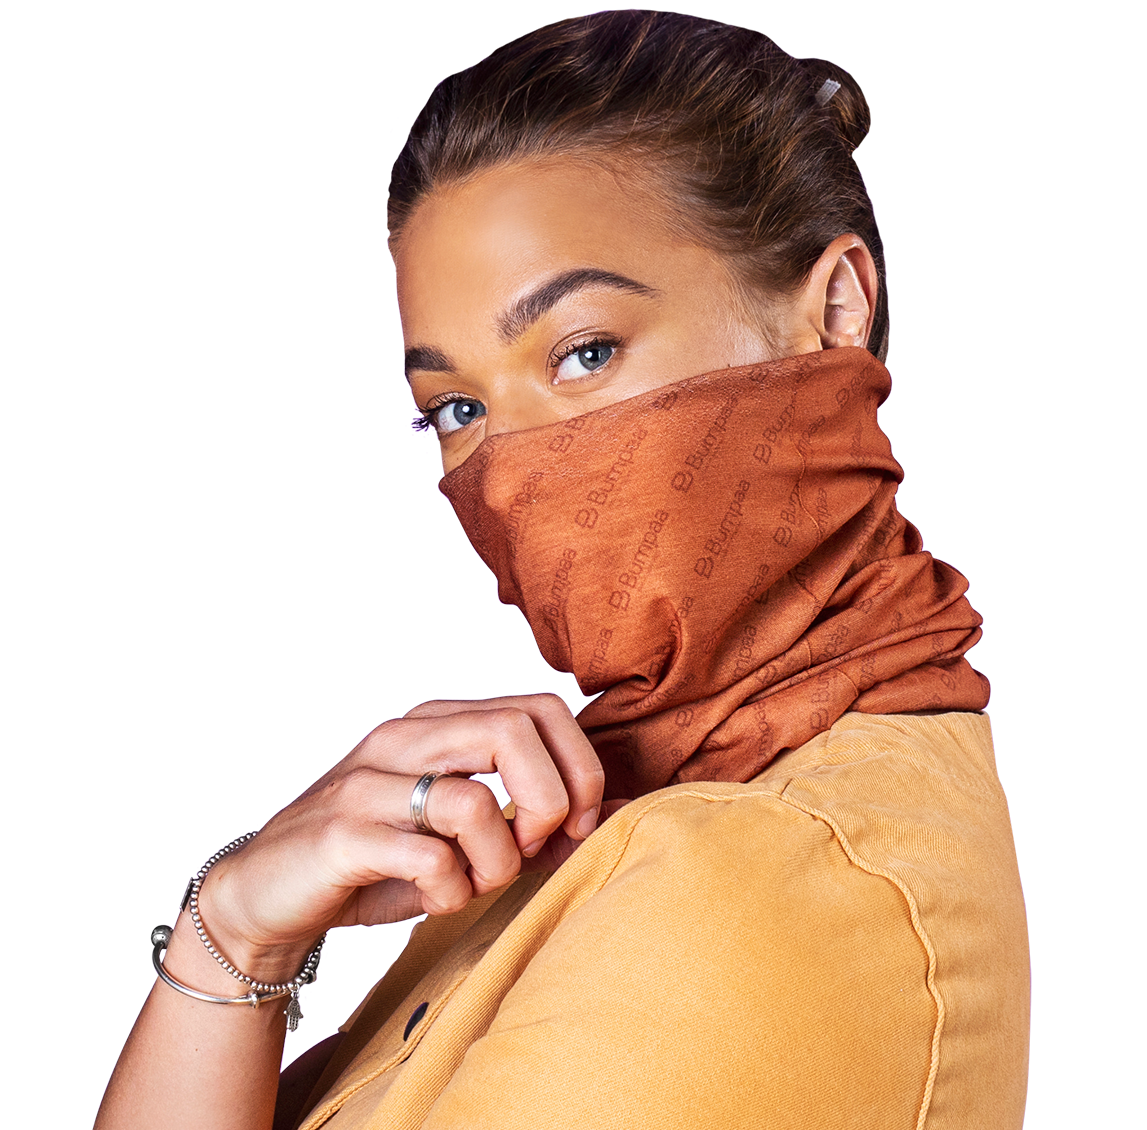 Bumpaa face masks & snoods help prevent the spread of viruses